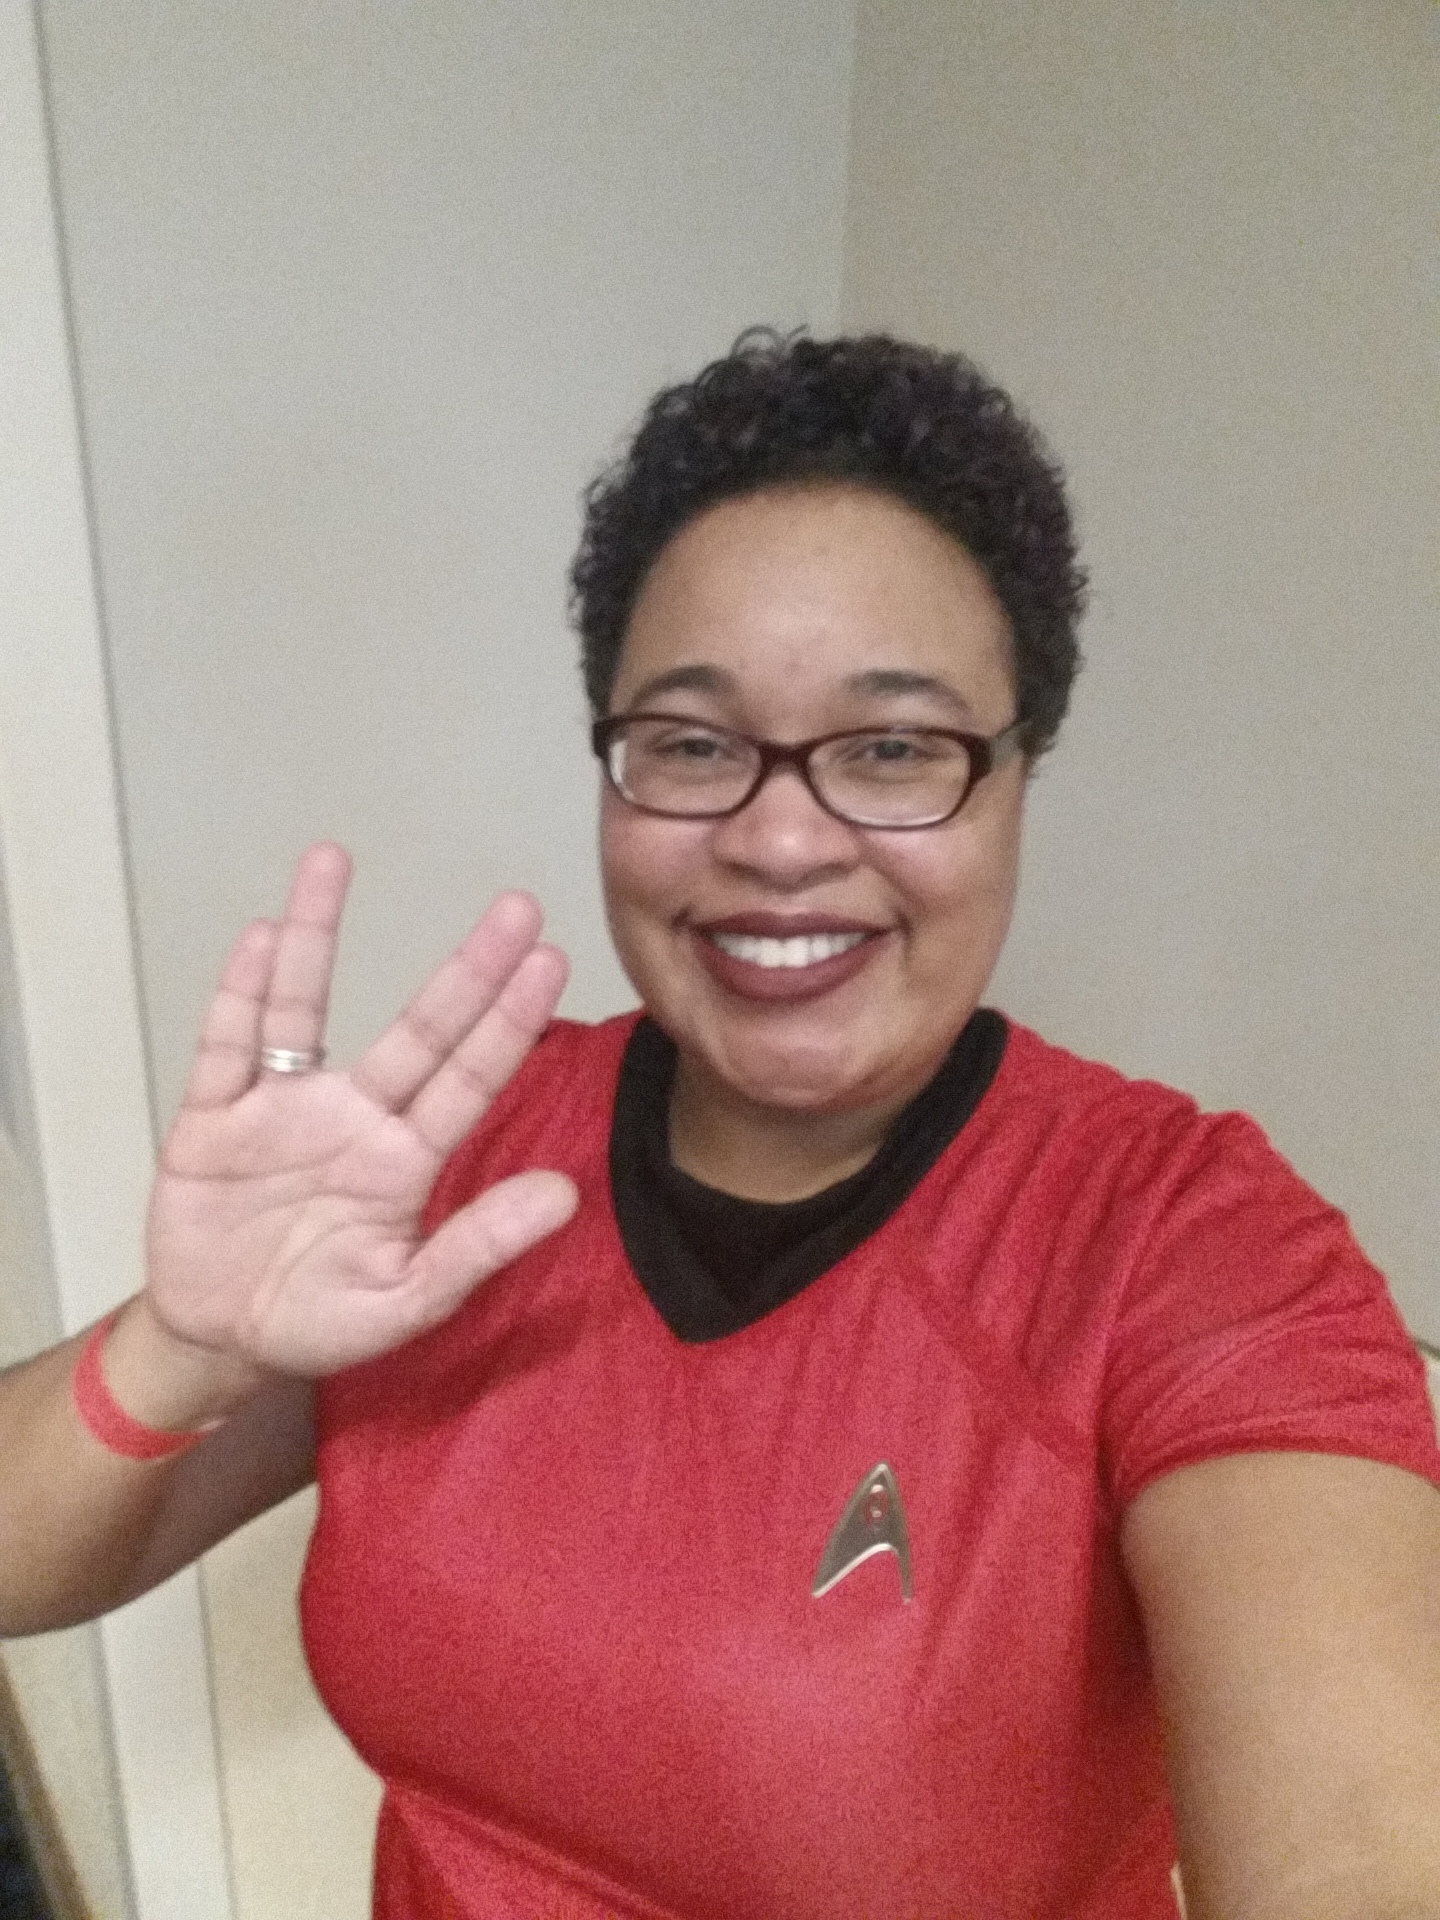 LLAP (Live Long and Prosper)!